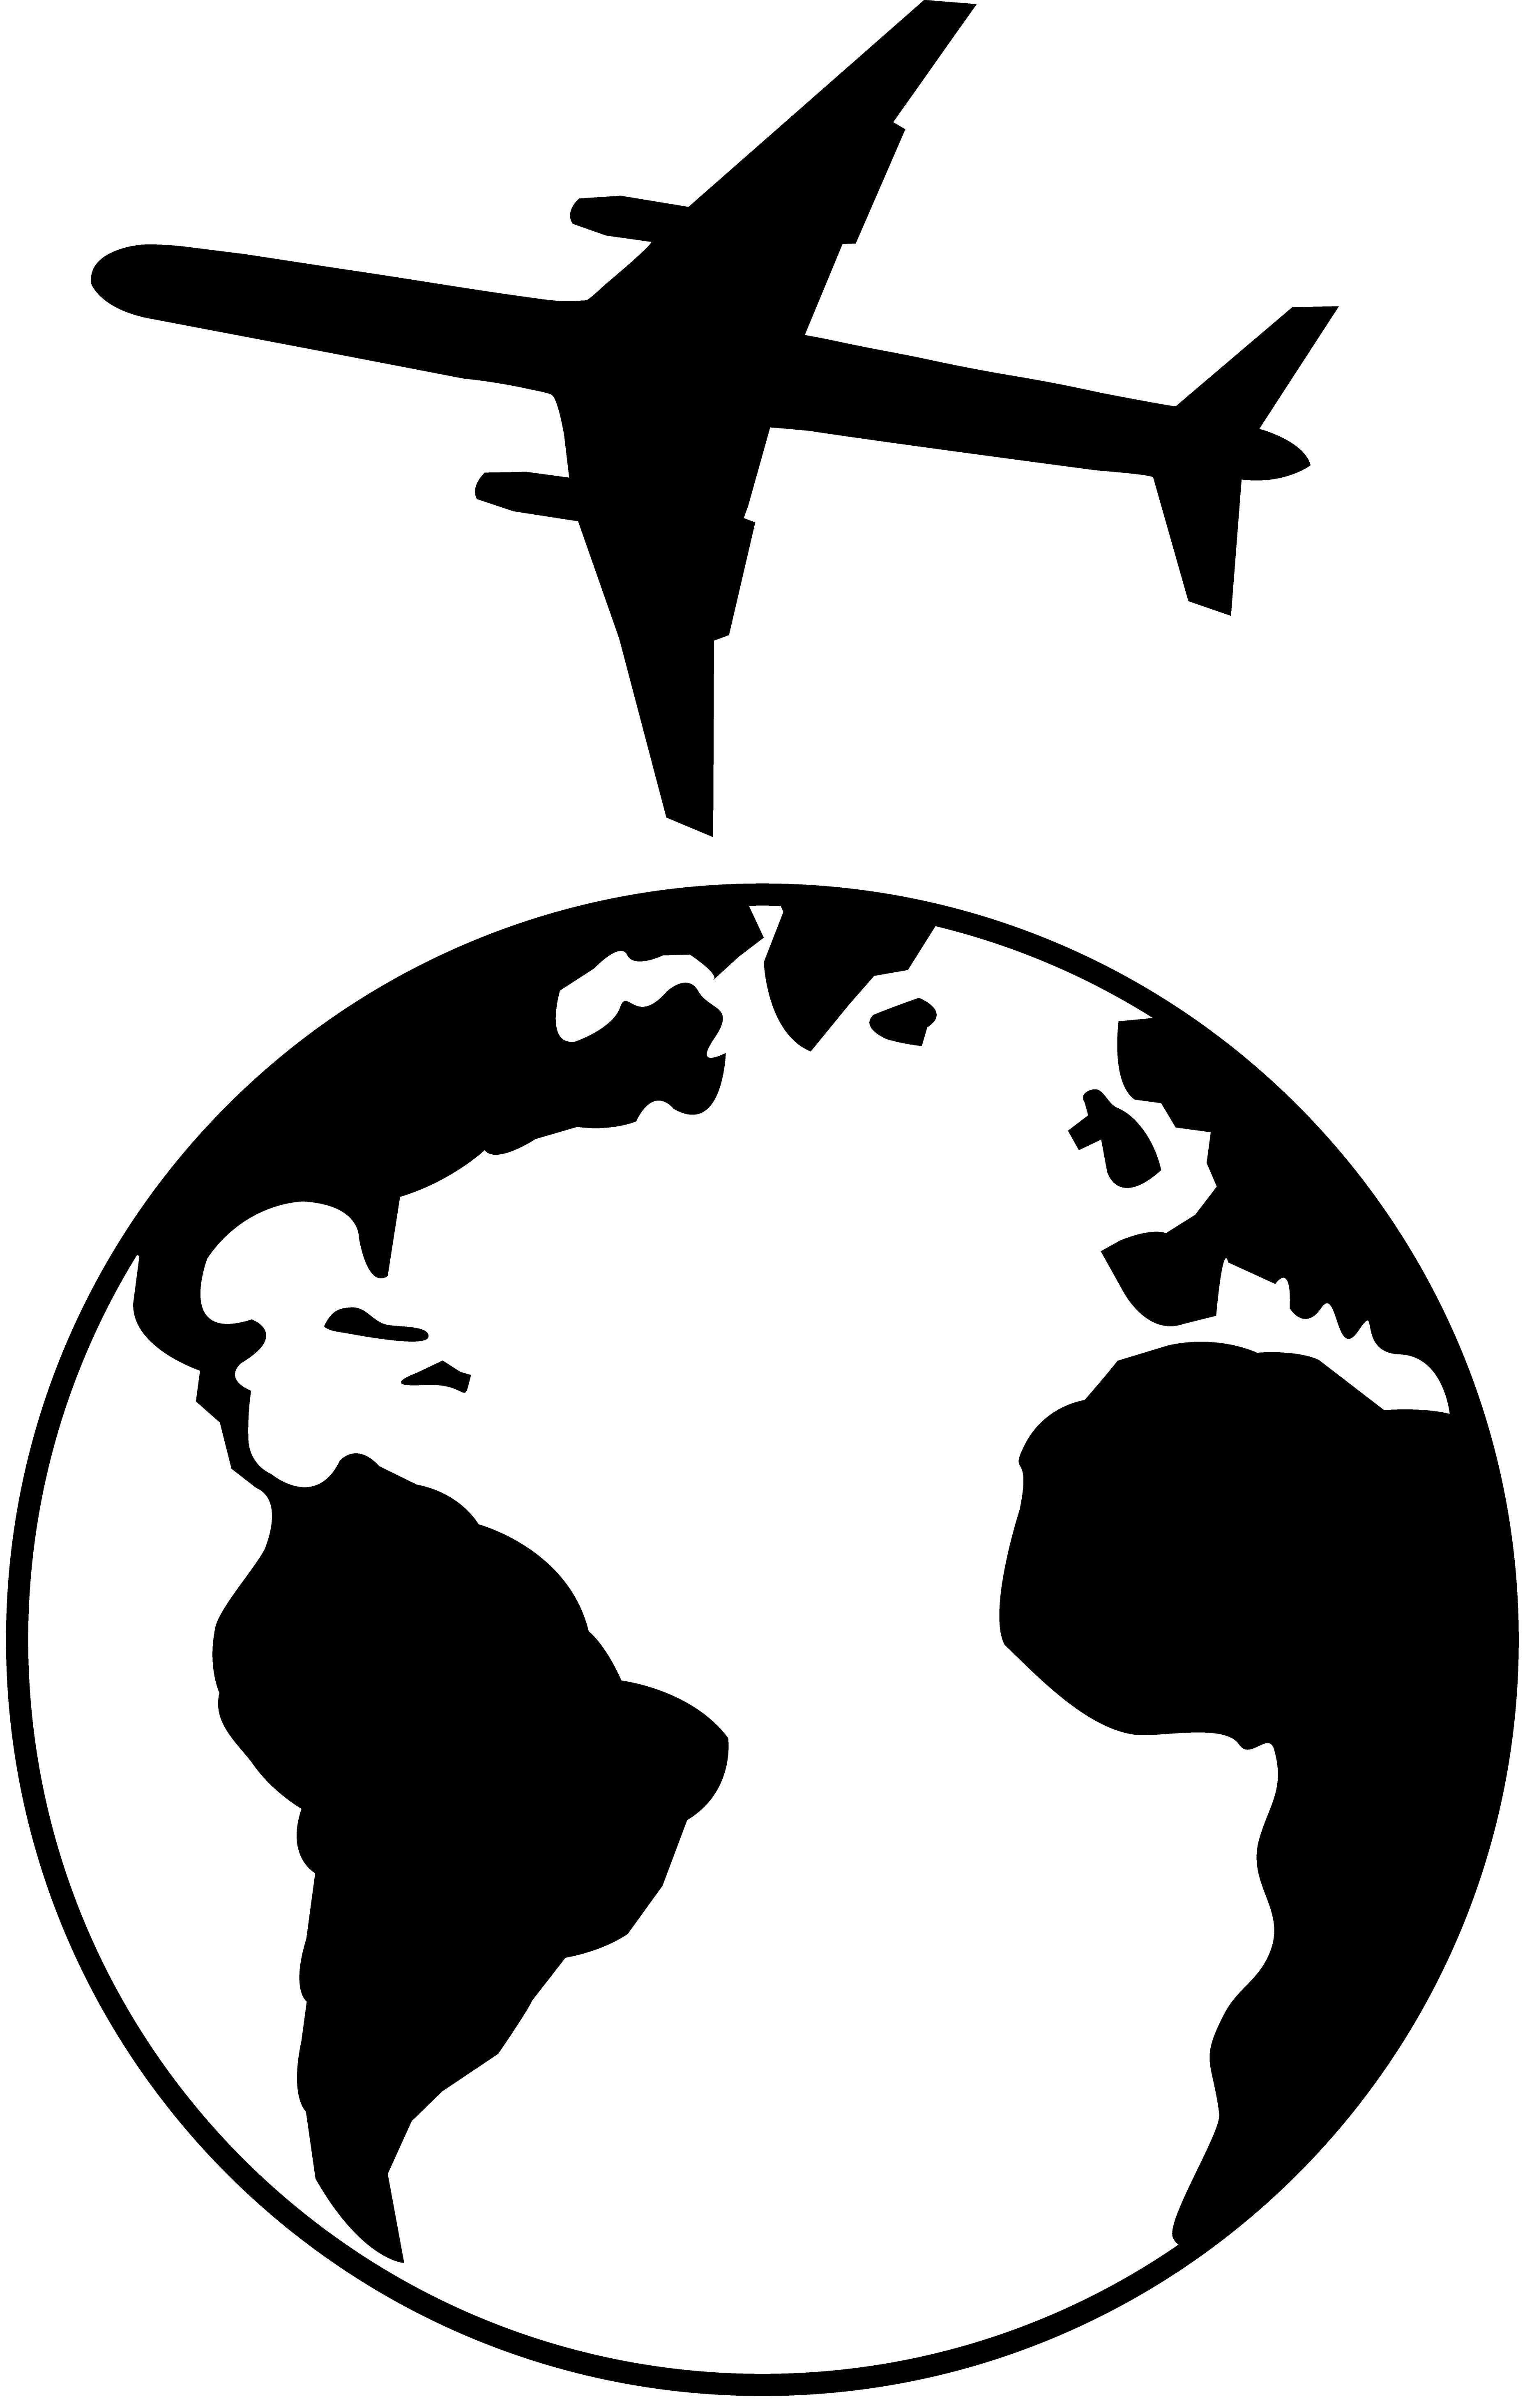 earth%20day%20clipart%20black%20and%20white